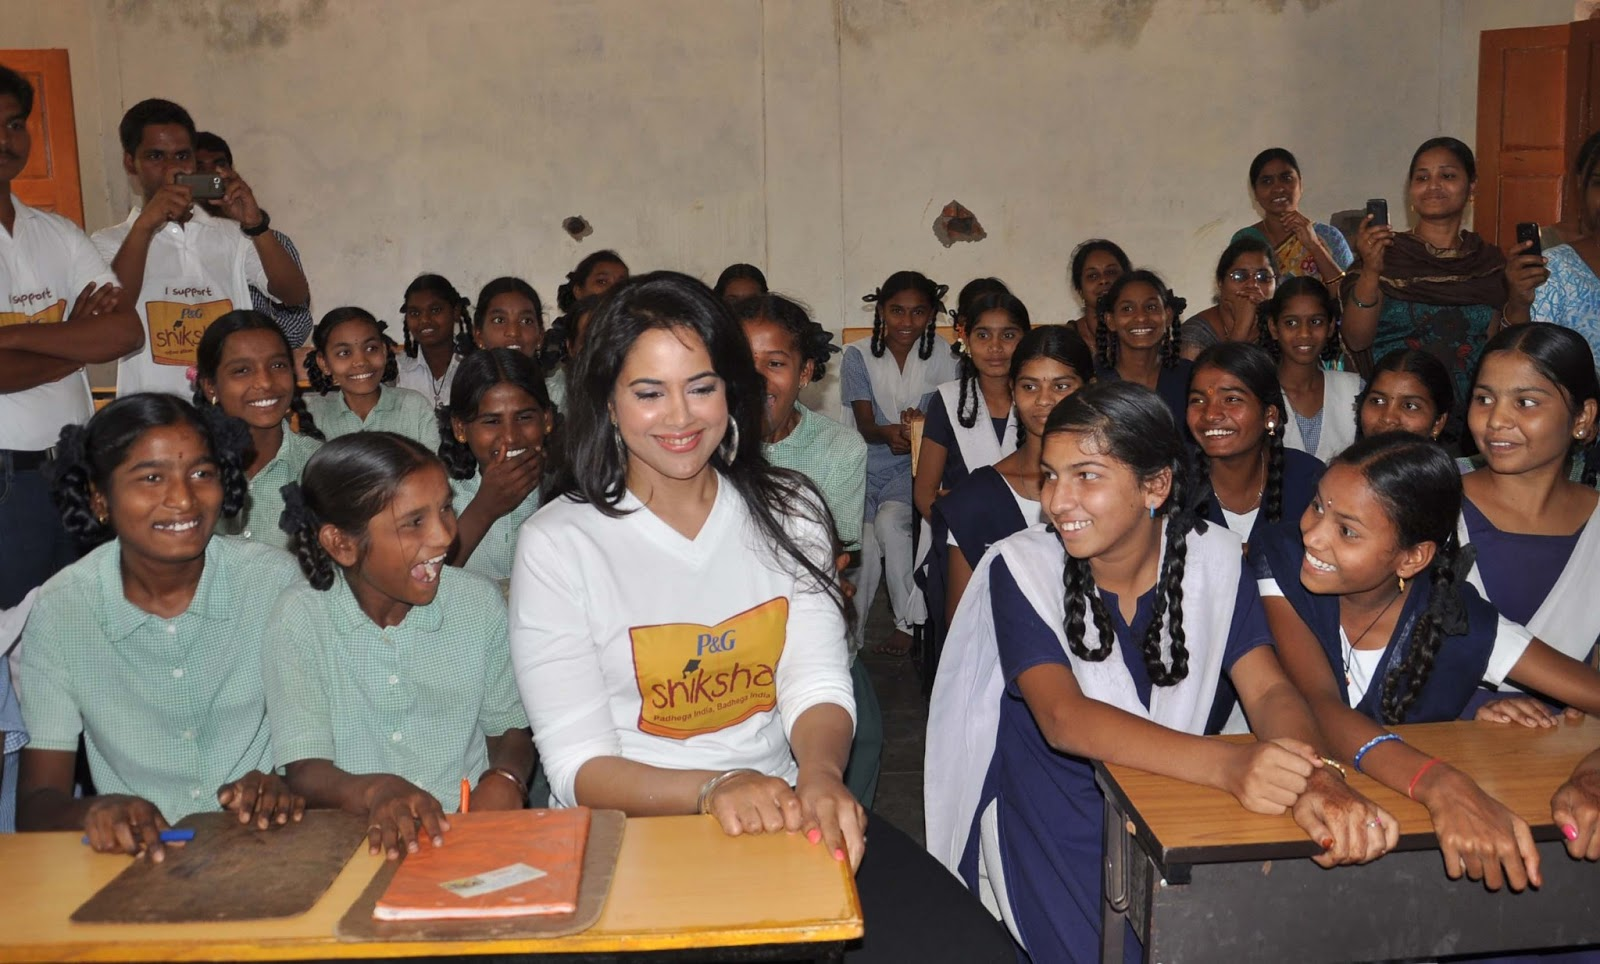 Sameera reddy at p and g shiksha diwas